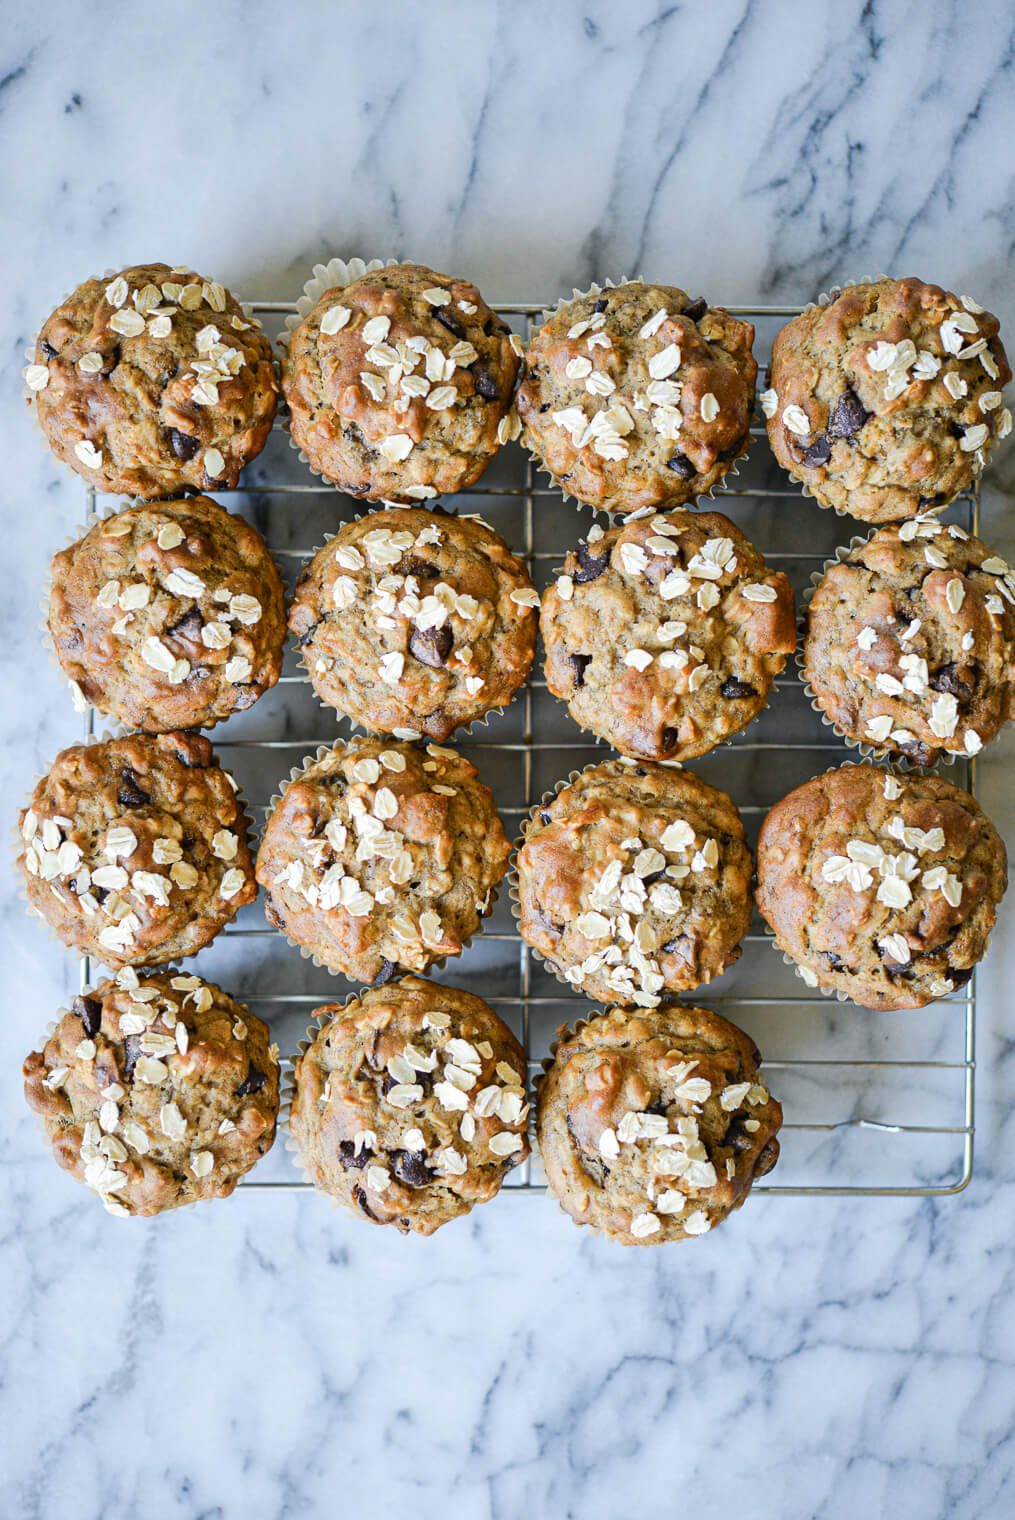 chocolate chip banana oat muffins on a wire baking rack on a marble surface